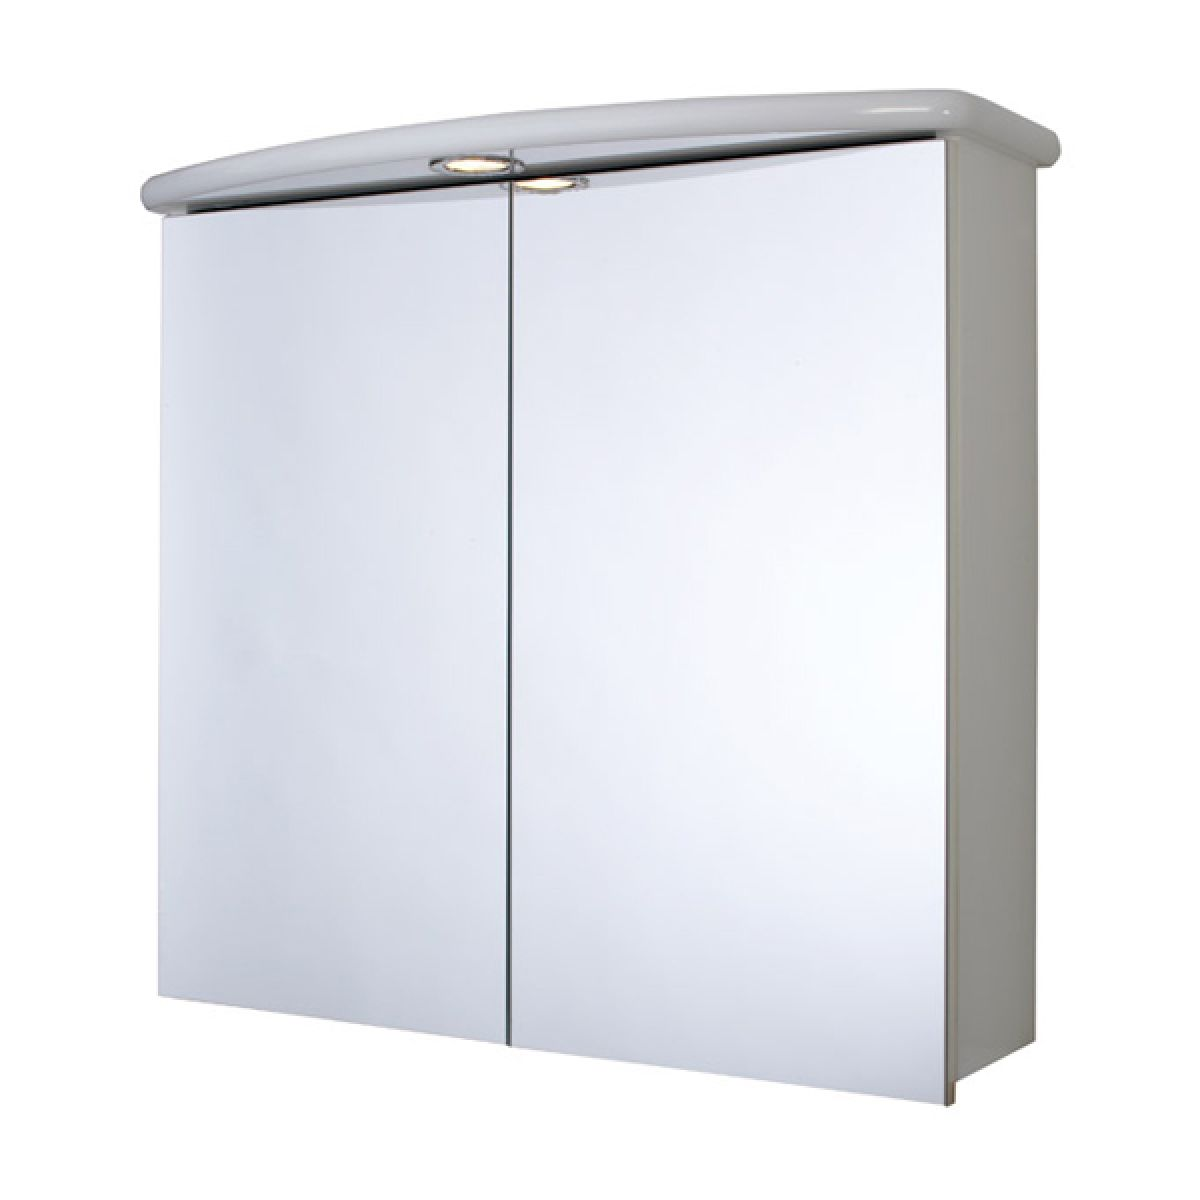 Croydex Thames Double Illuminated White Bathroom Cabinet